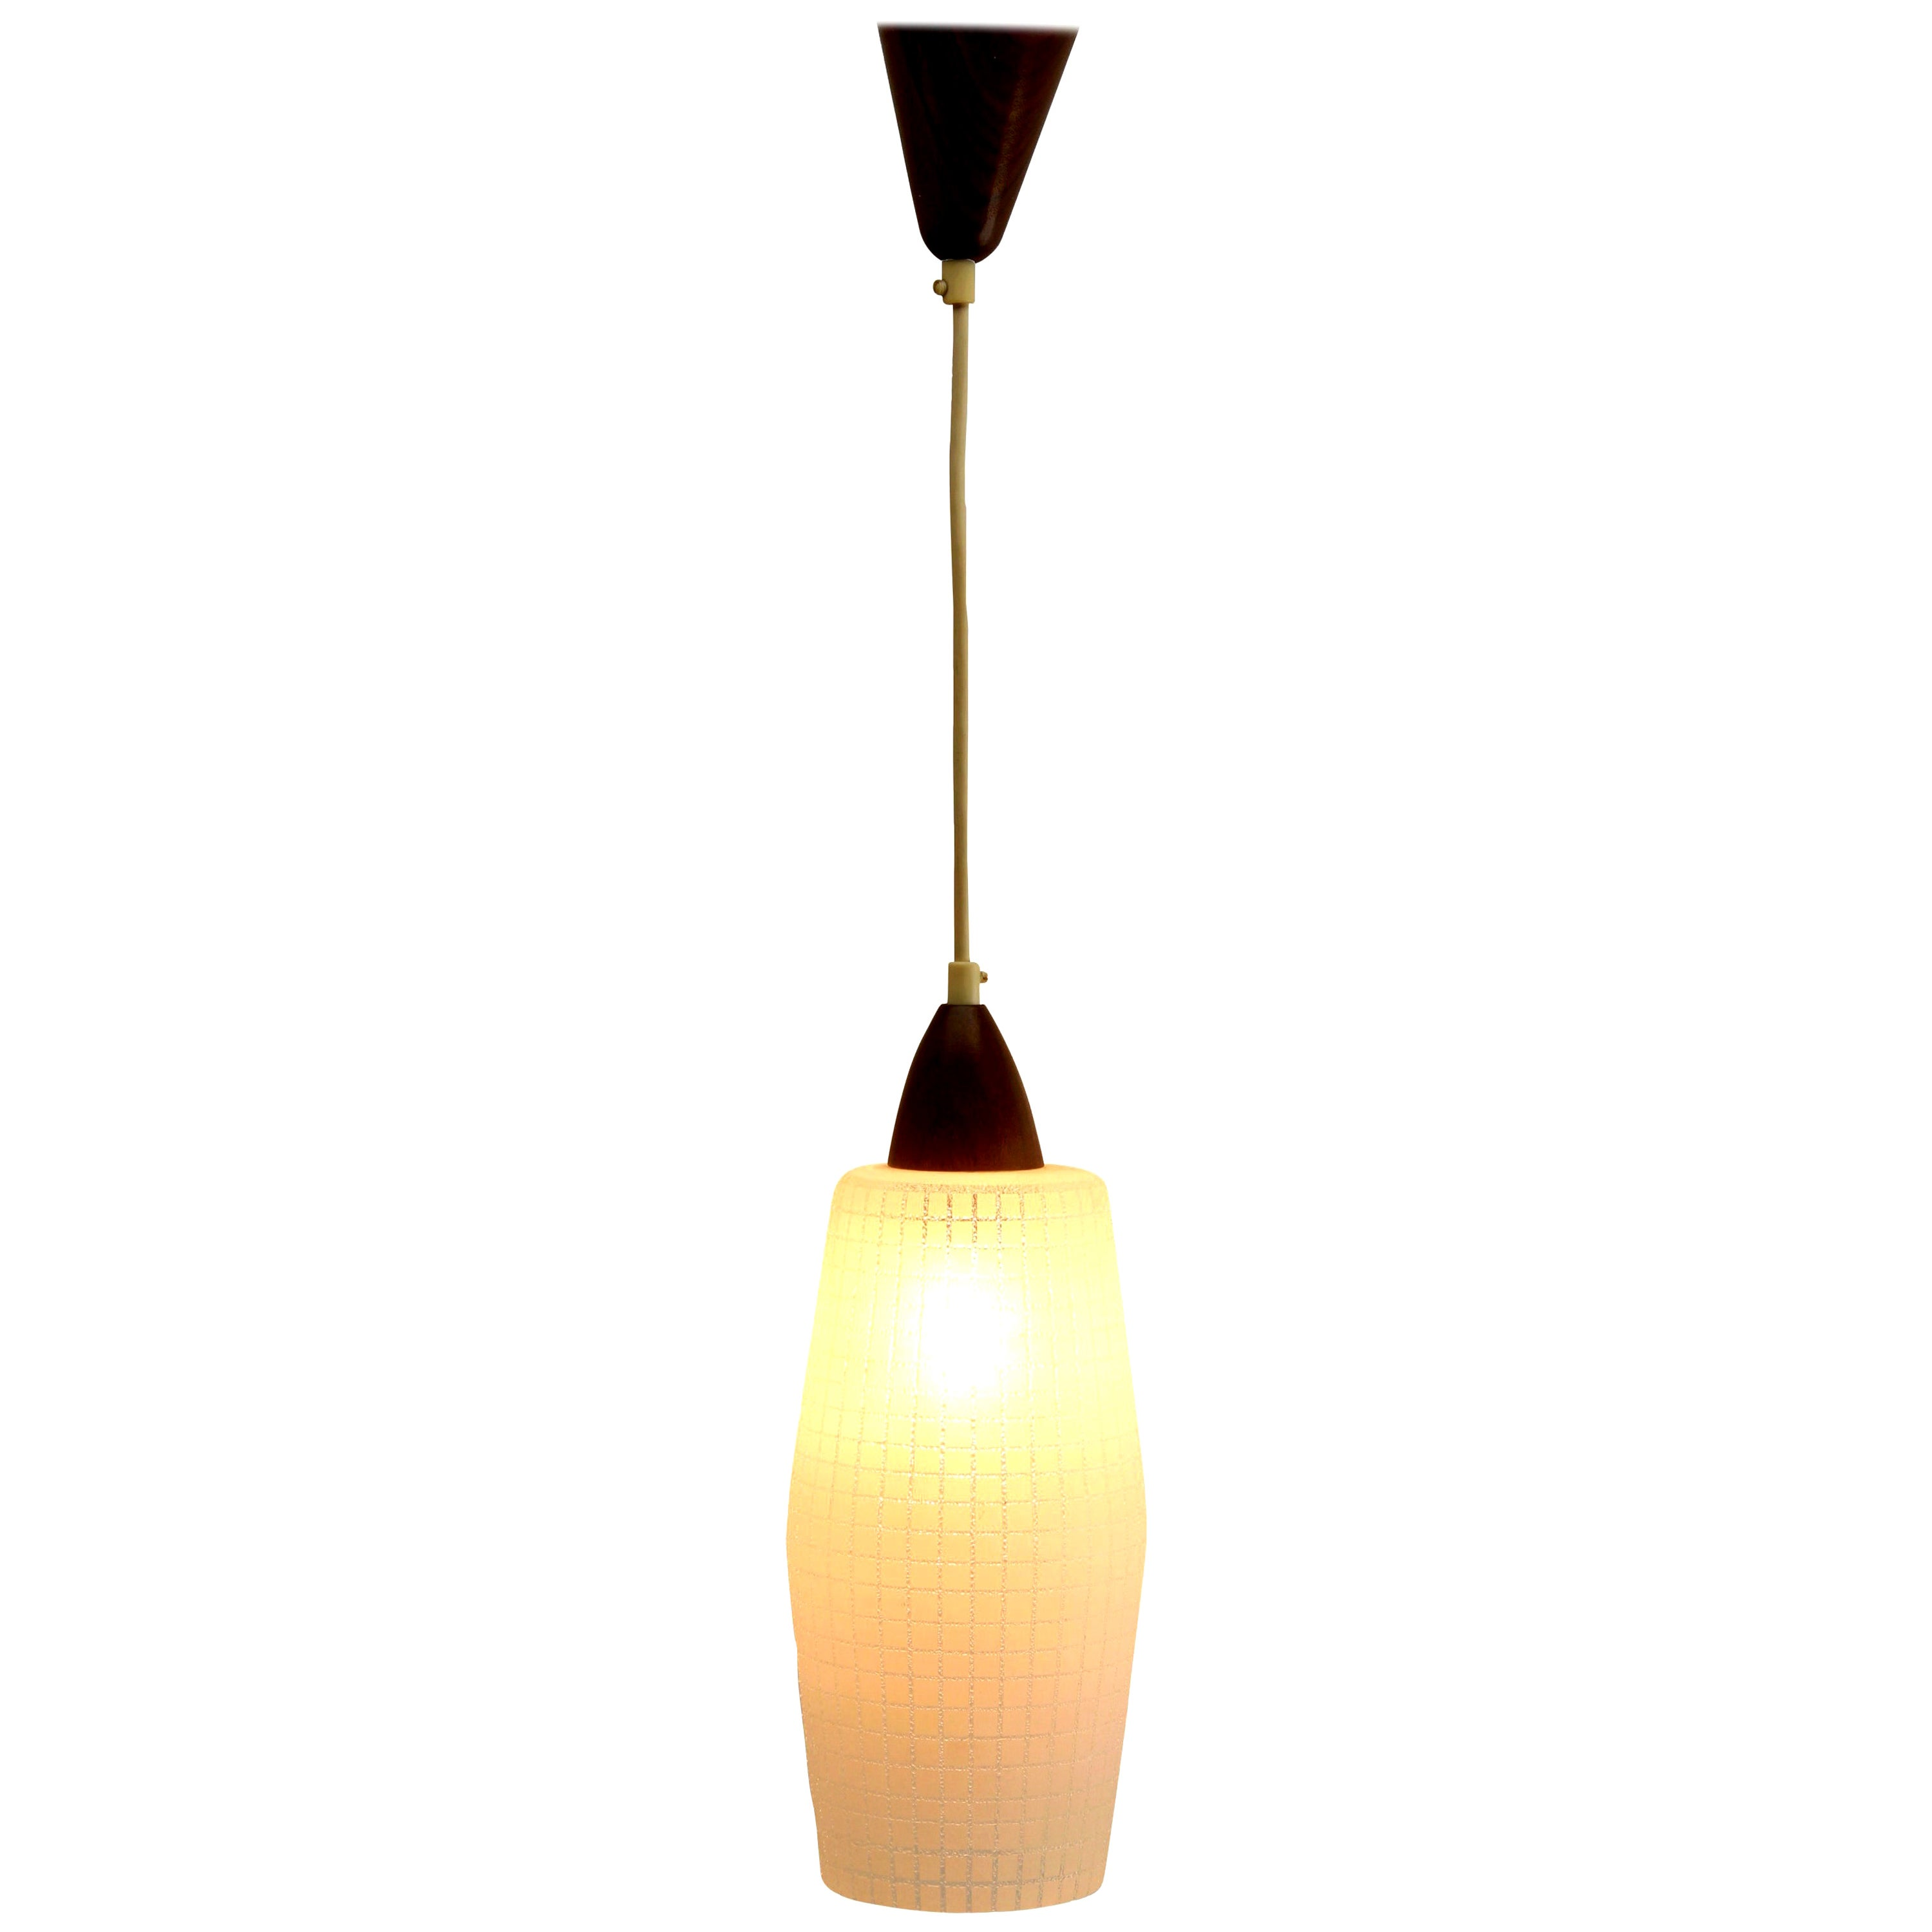 Midcentury Single Pendant Light, Teak with Frosted Optical Shade